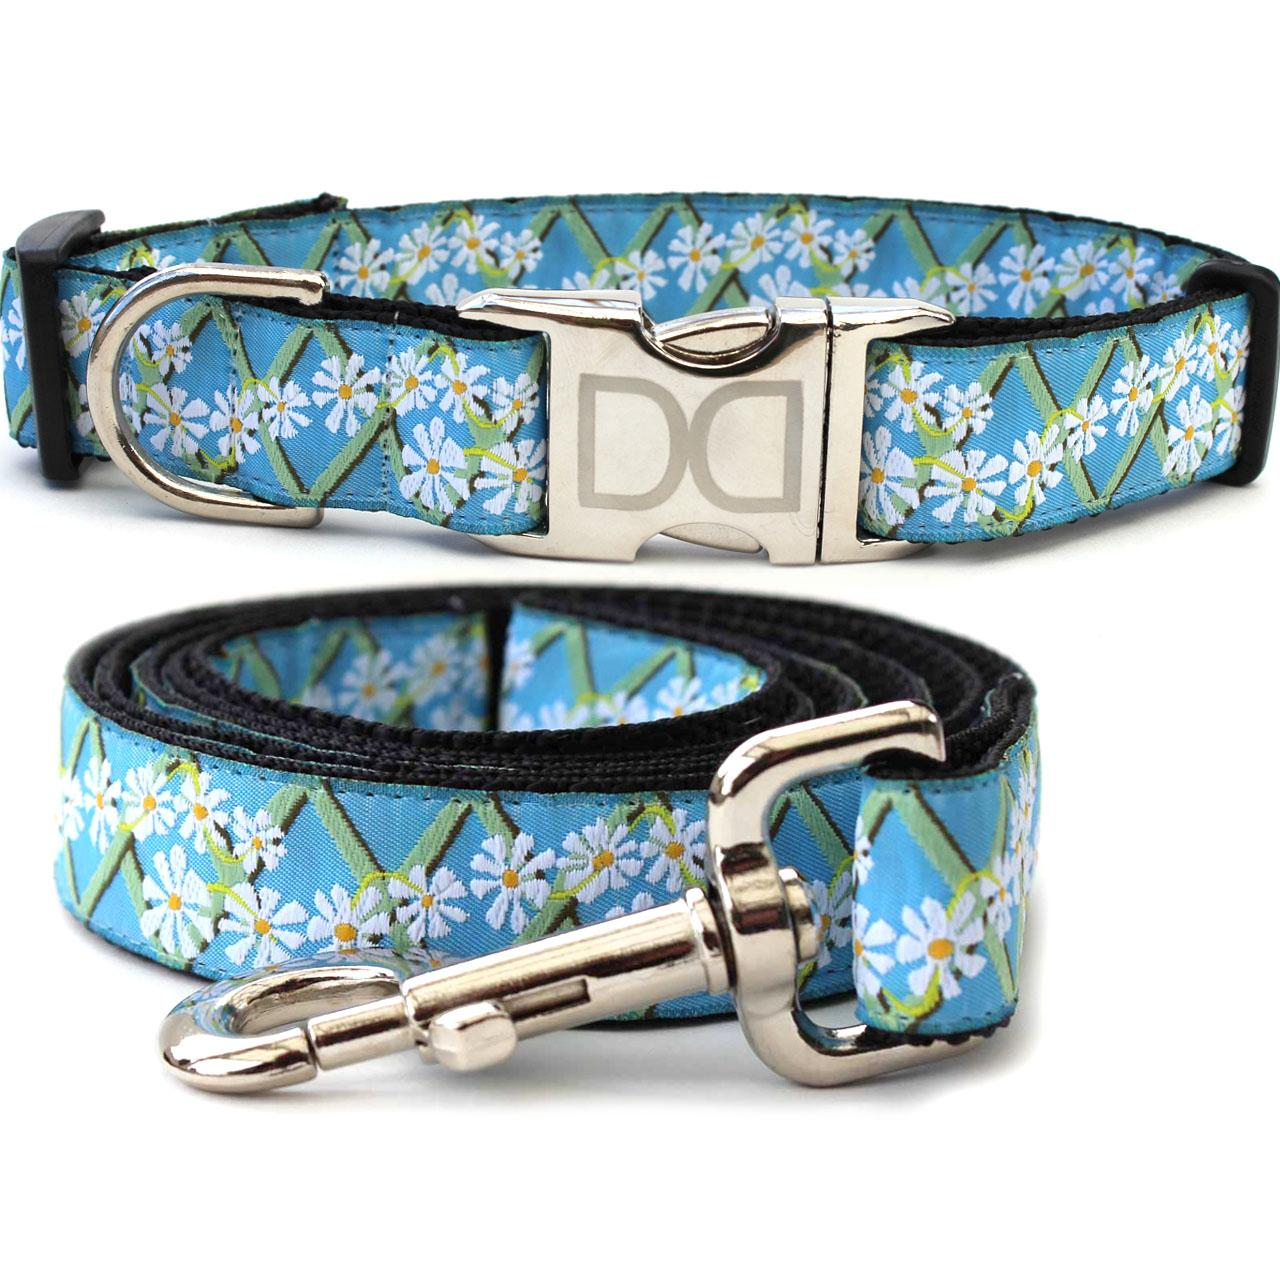 Daisy Dog Collar and Leash Set by Diva Dog